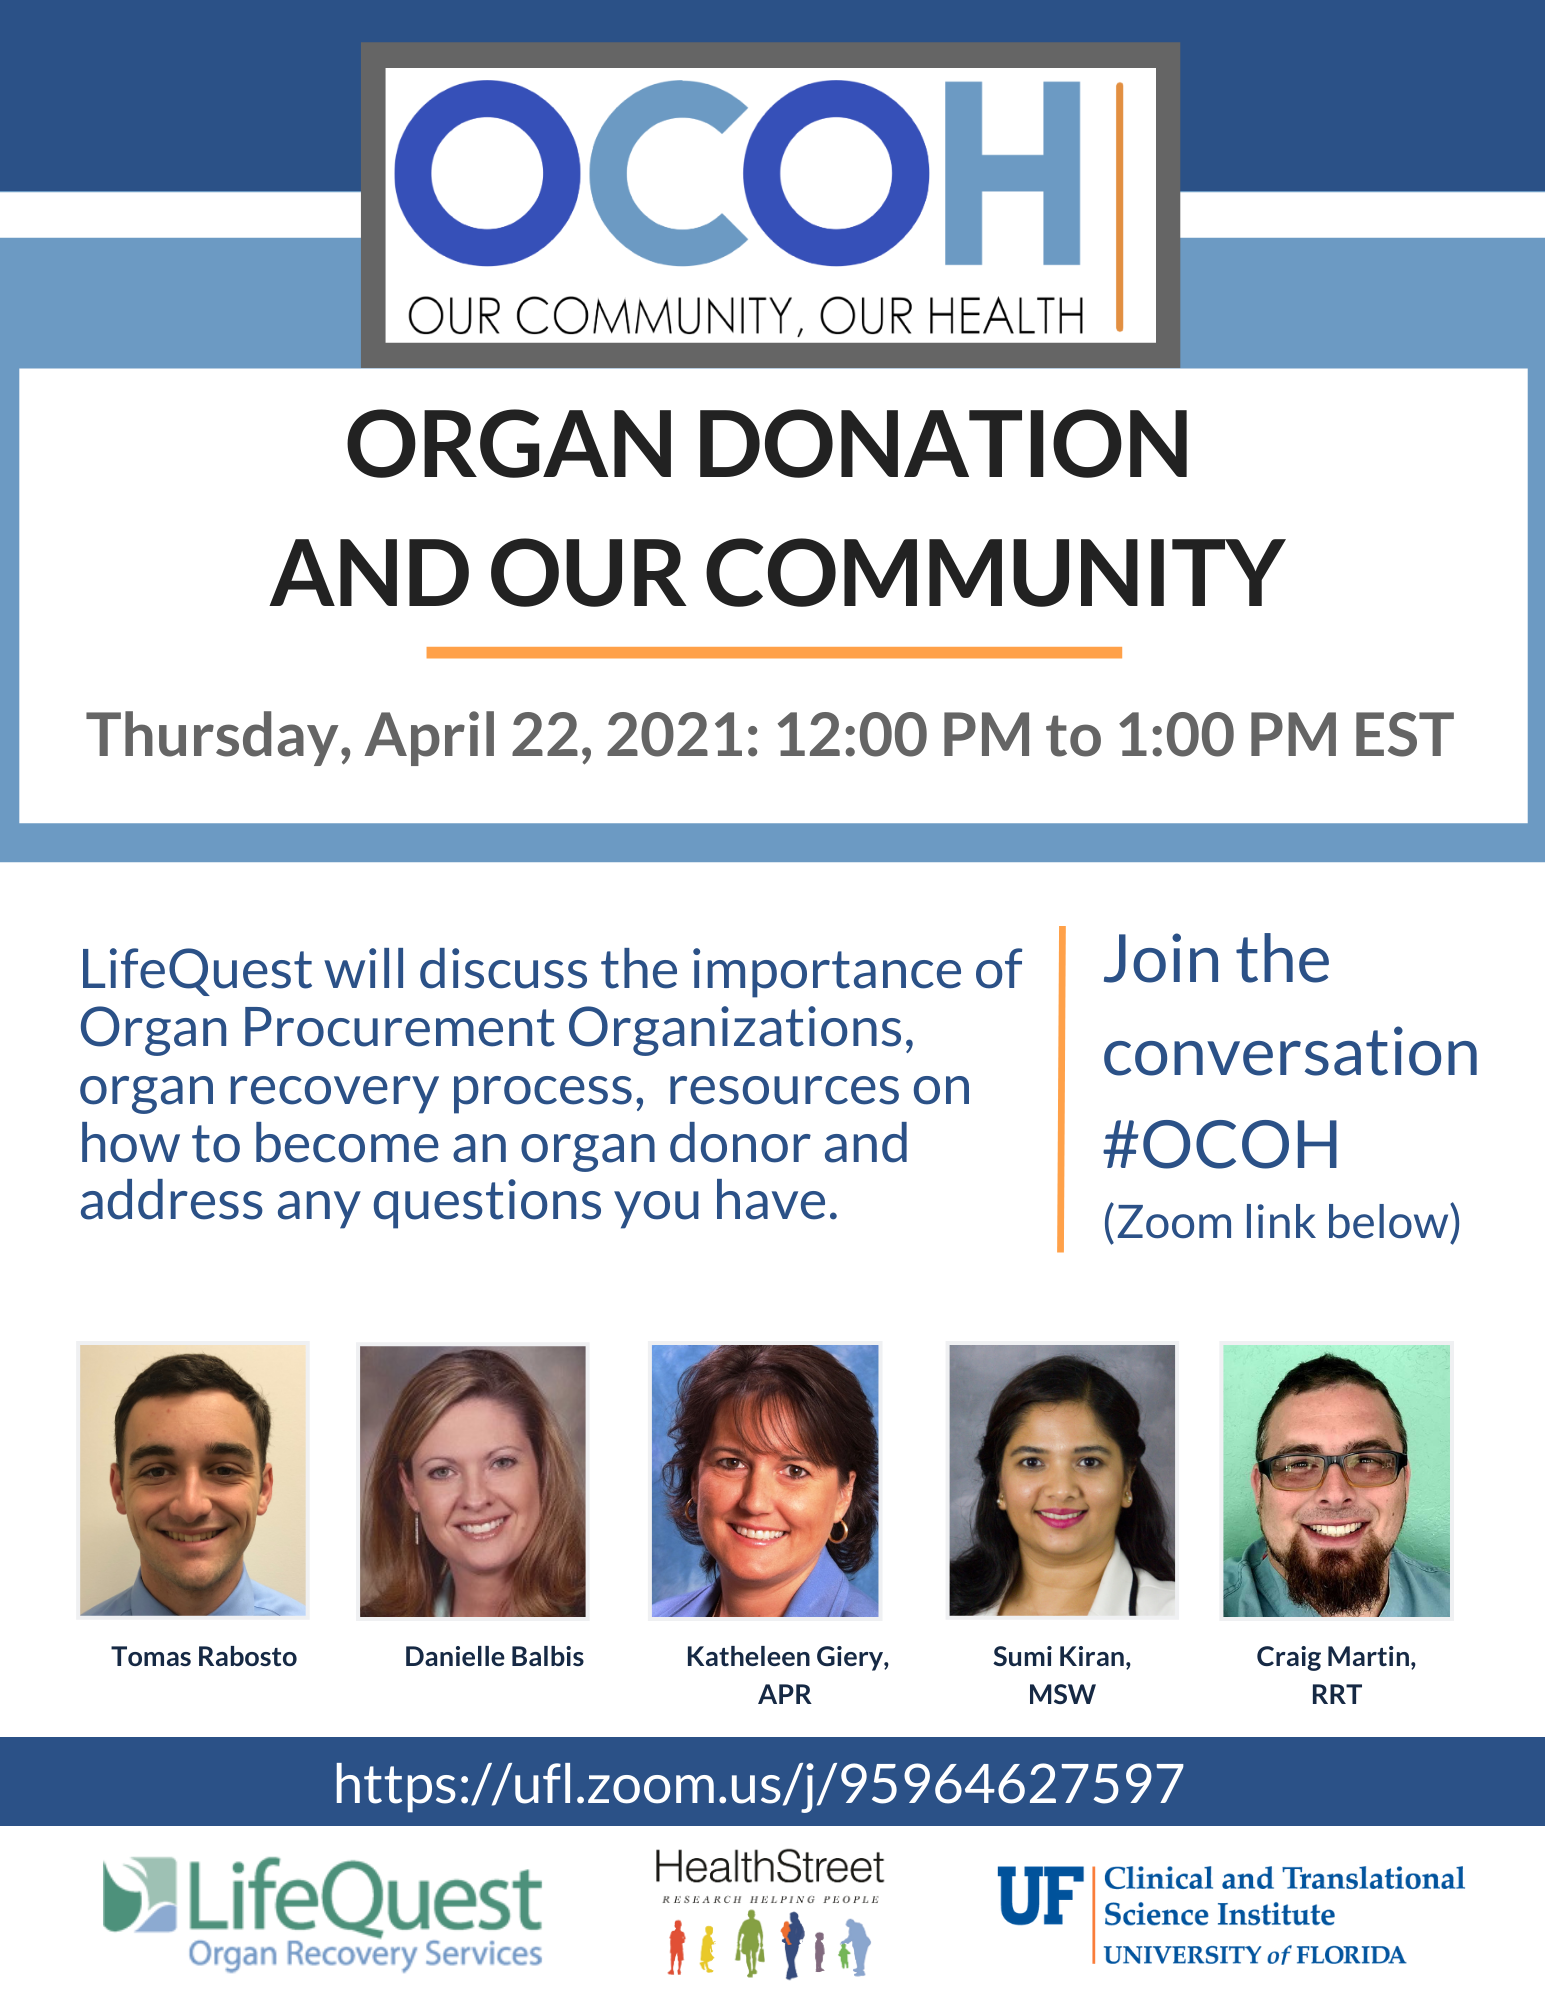 OCOH Organ Donation and Our Community